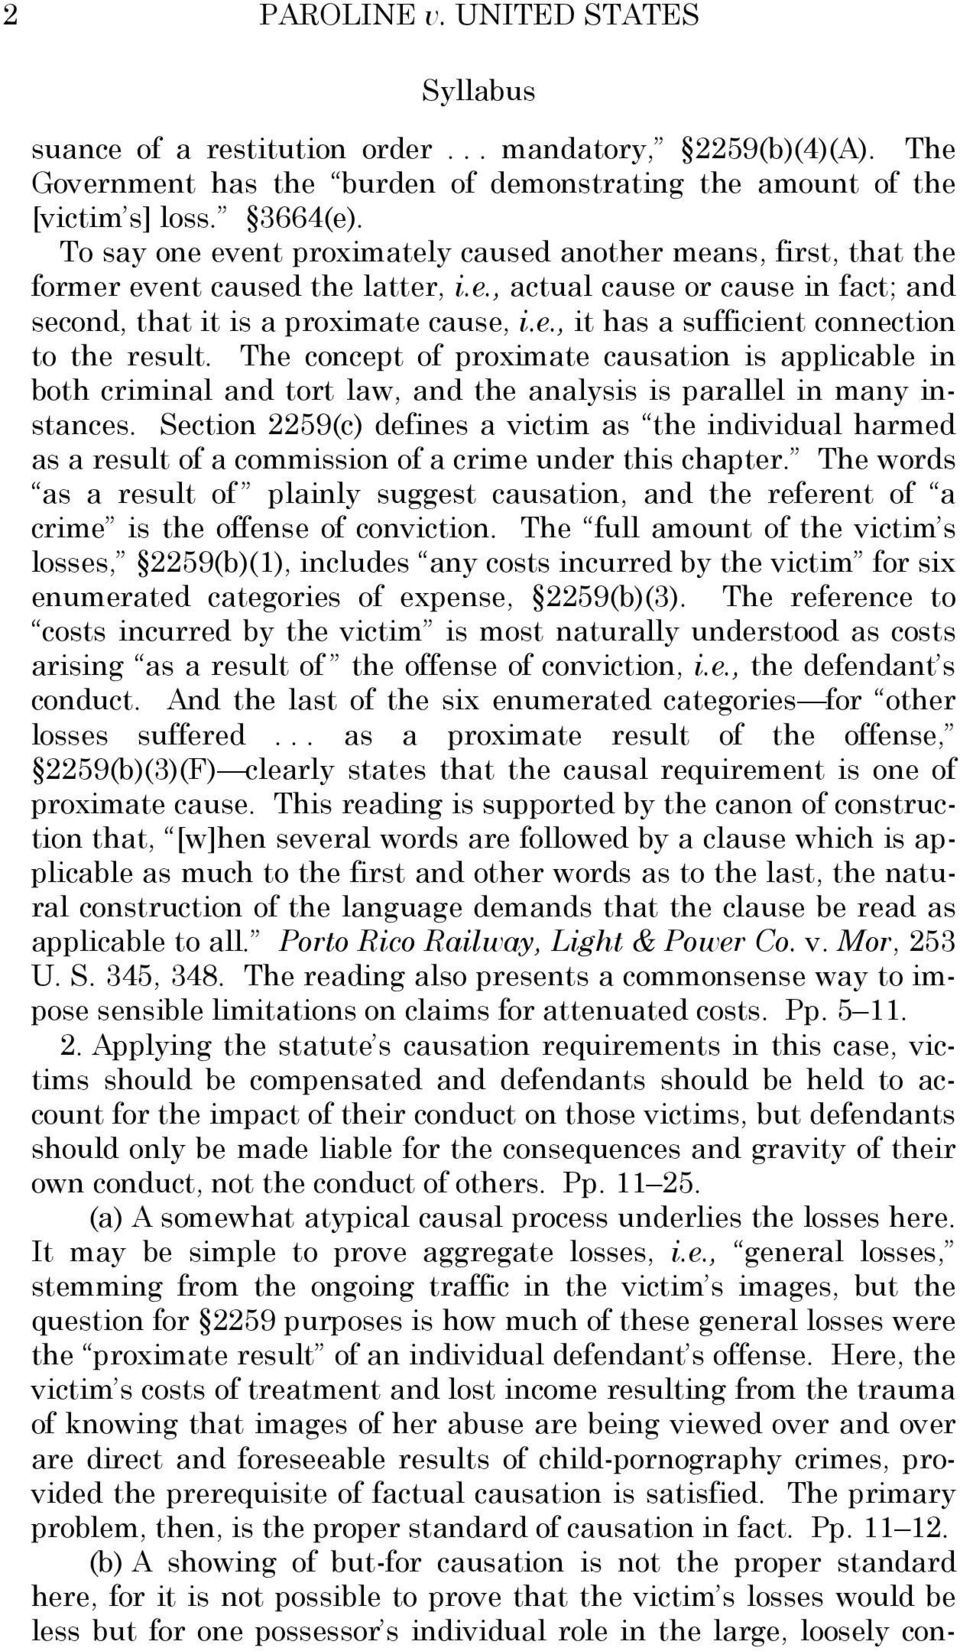 The concept of proximate causation is applicable in both criminal and tort law, and the analysis is parallel in many instances.